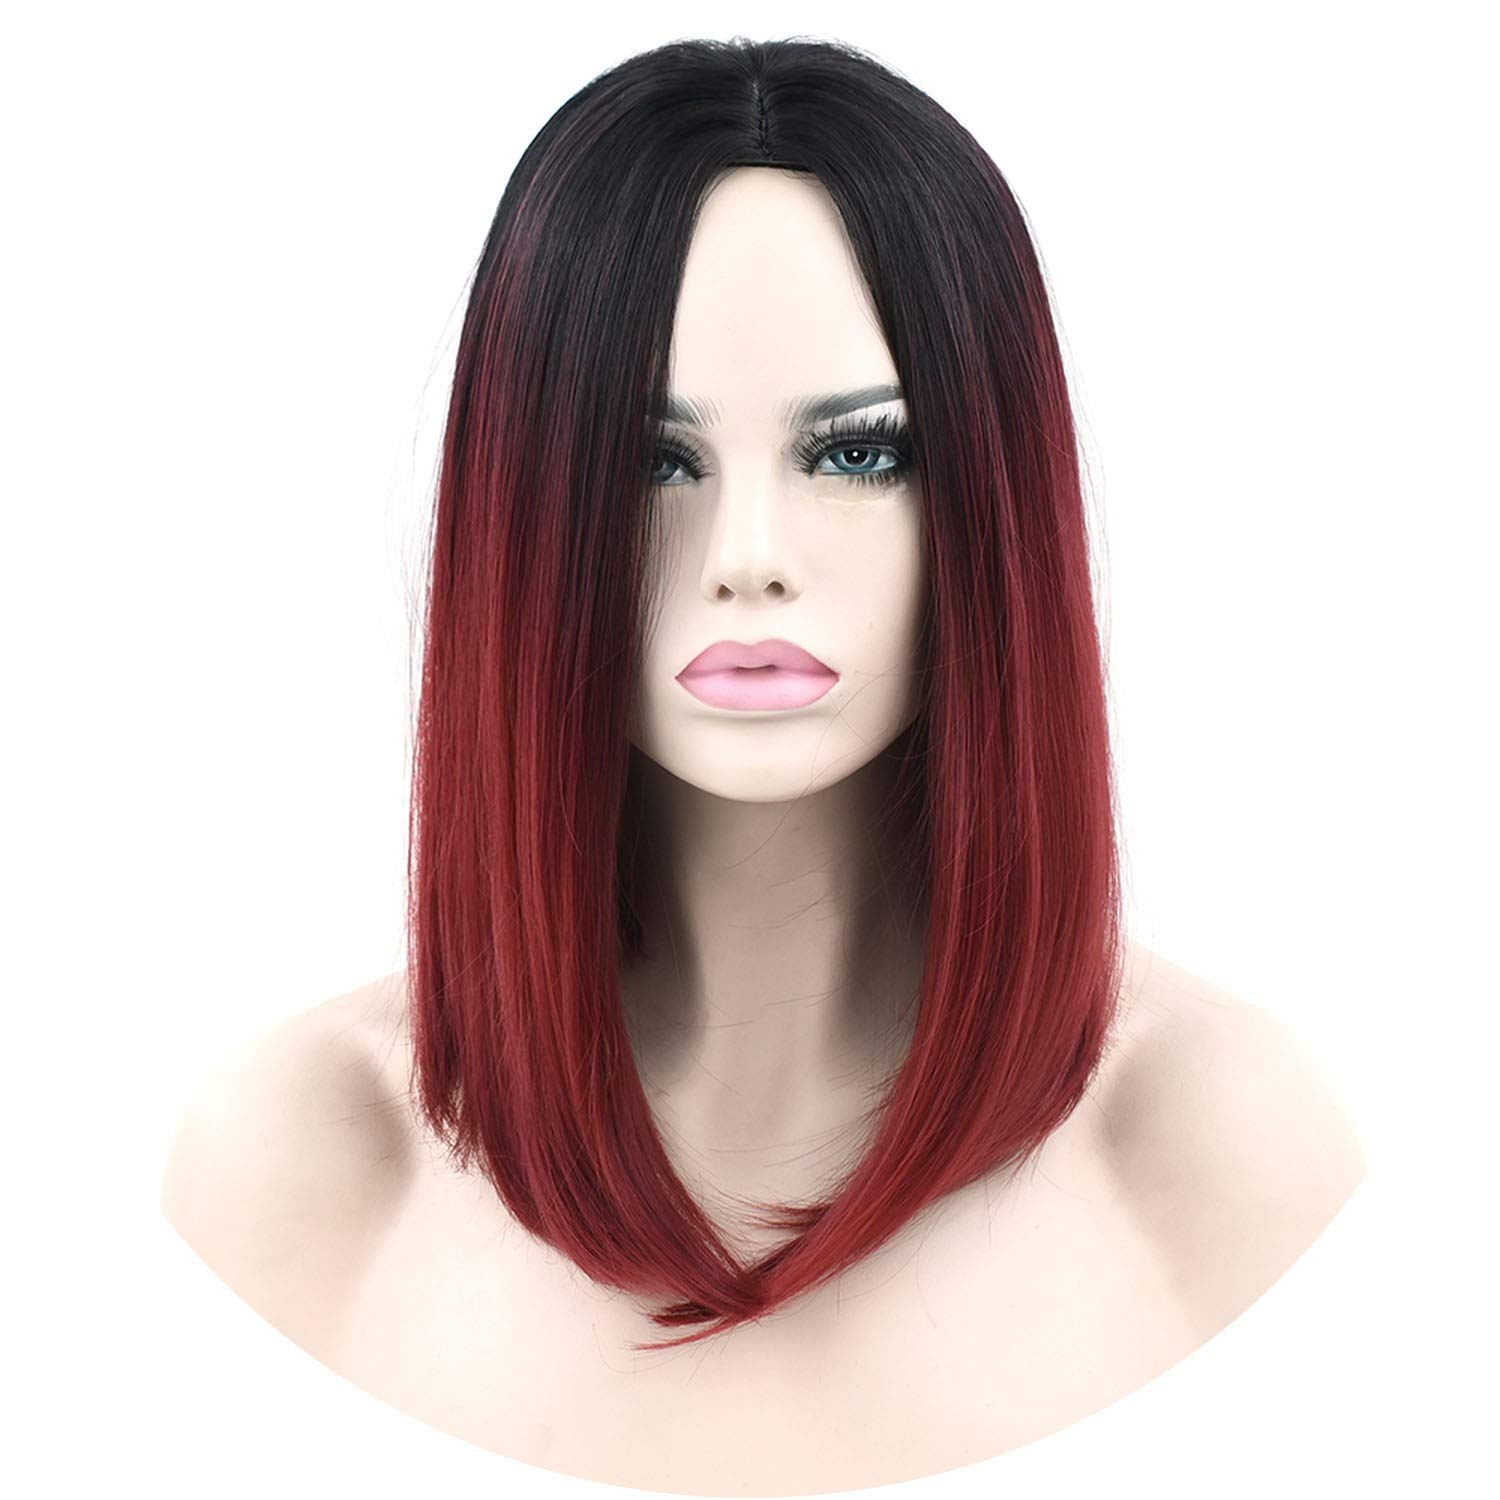 11 Colors Black To Pink Ombre Hair Straight Bob Wigs Synthetic Hair Short Party Hair Cosplay Wig for Women,T1B/Burgundy,16inches by Welcome the good future